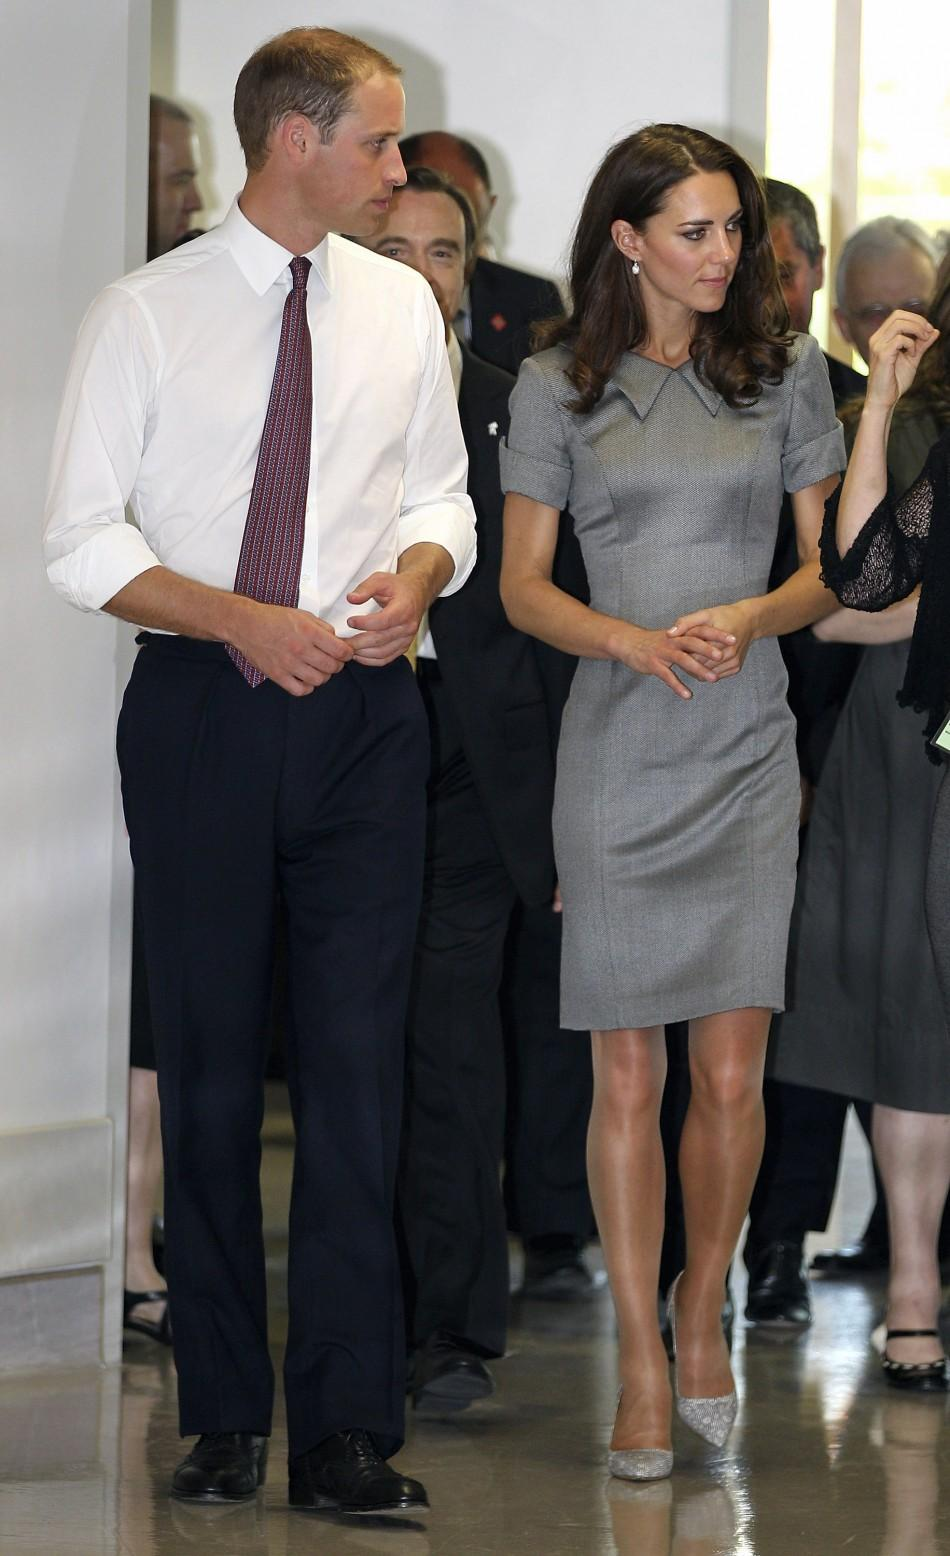 Prince William and Catherine, Duchess of Cambridge, walk as they visit the Sainte-Justine Hospital in Montreal